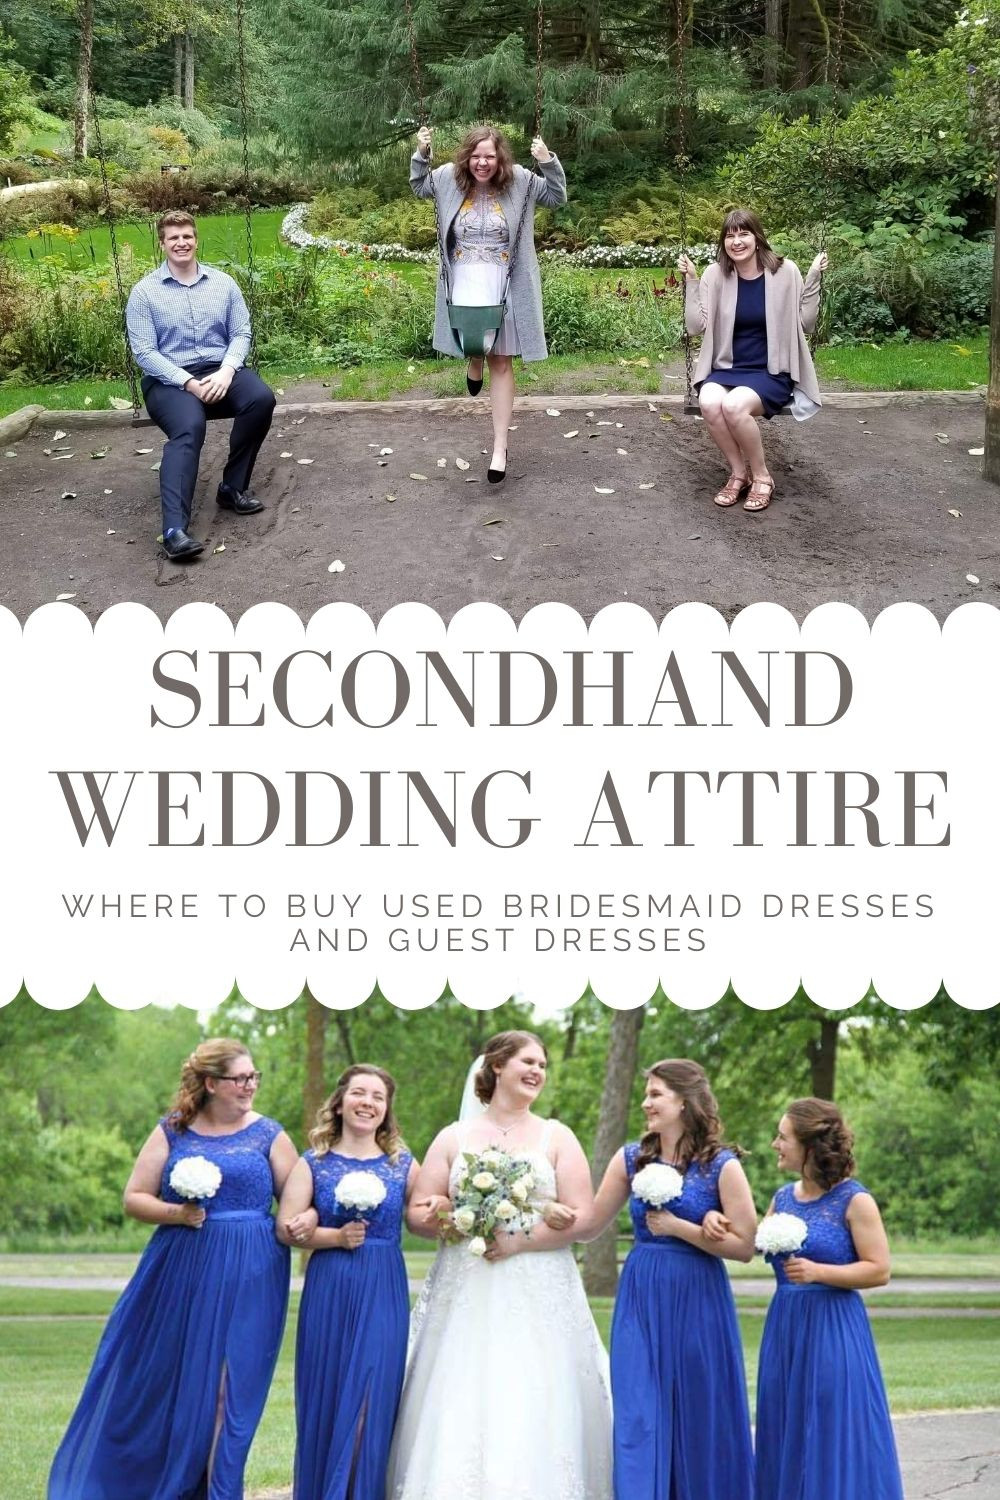 Secondhand Wedding Attire Where to Buy Dresses Pinterest Pin